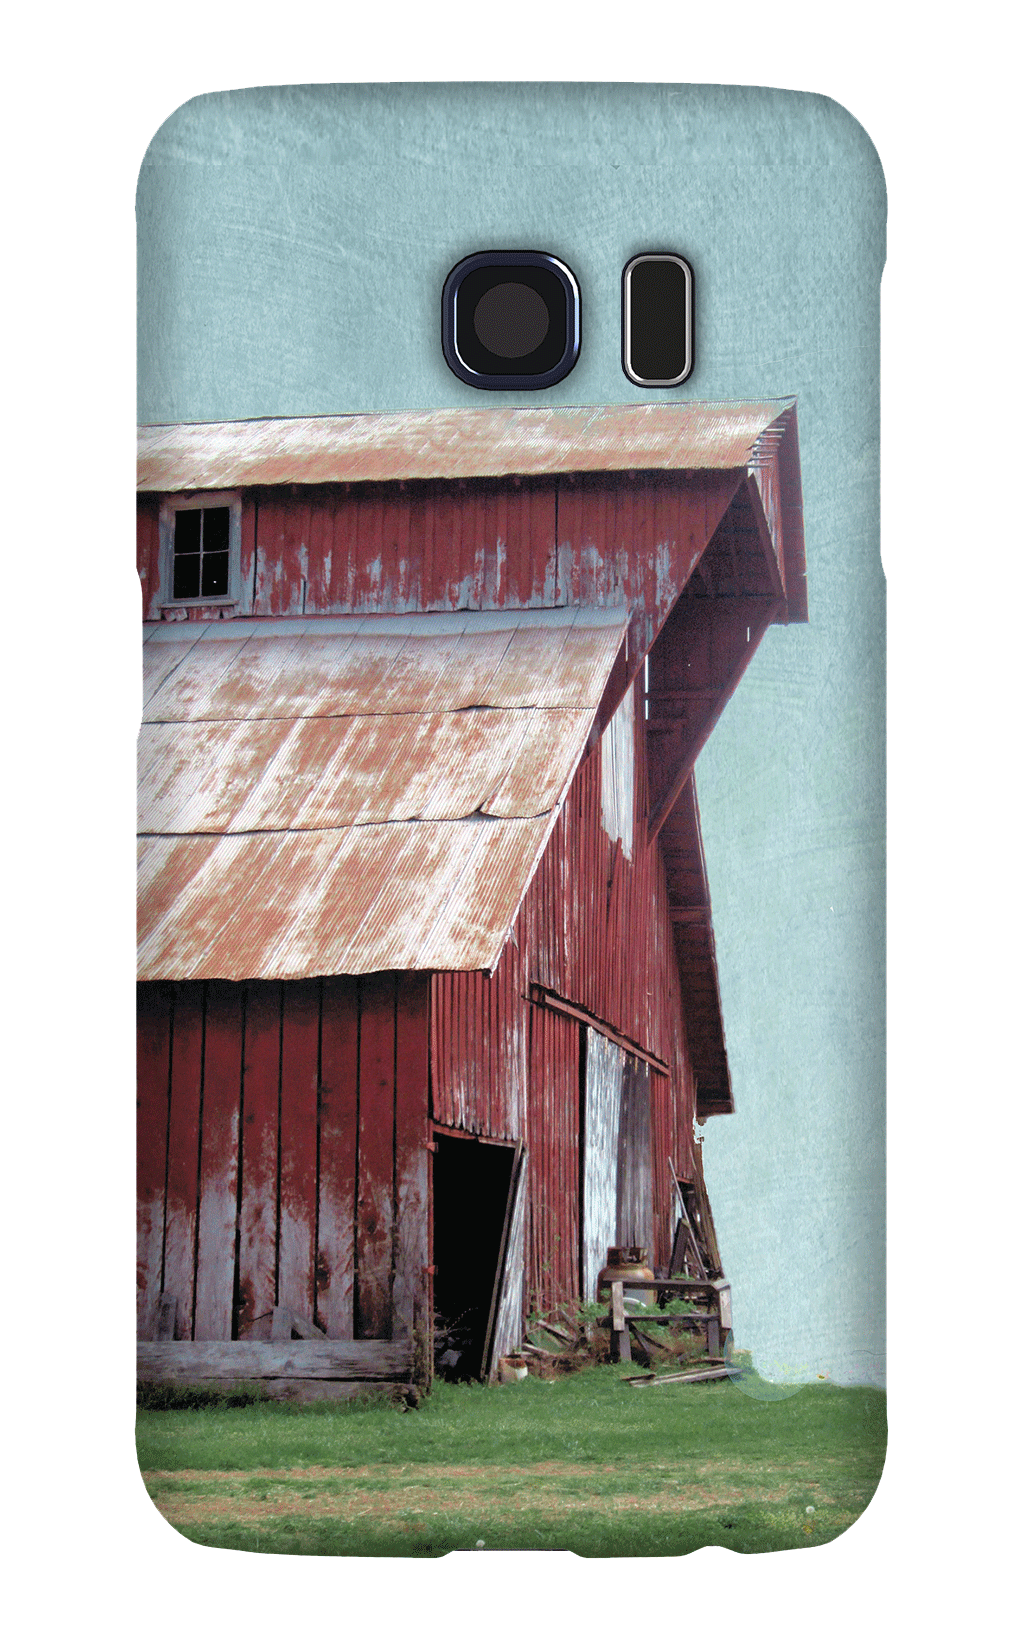 Serenity-Cellphone-Case